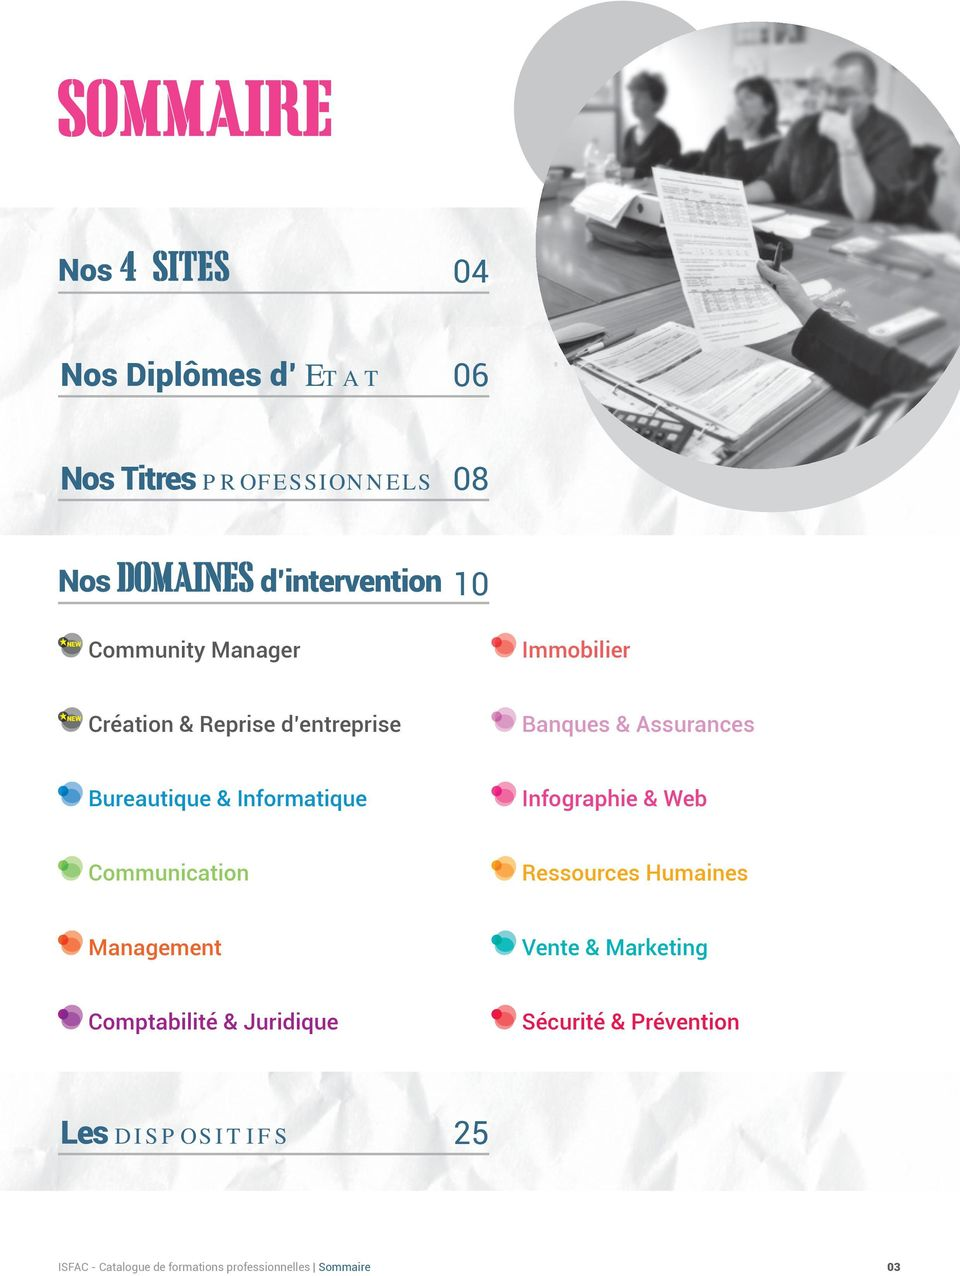 Web Communication Ressources Humaines Management Vente & Marketing Comptabilité & Juridique